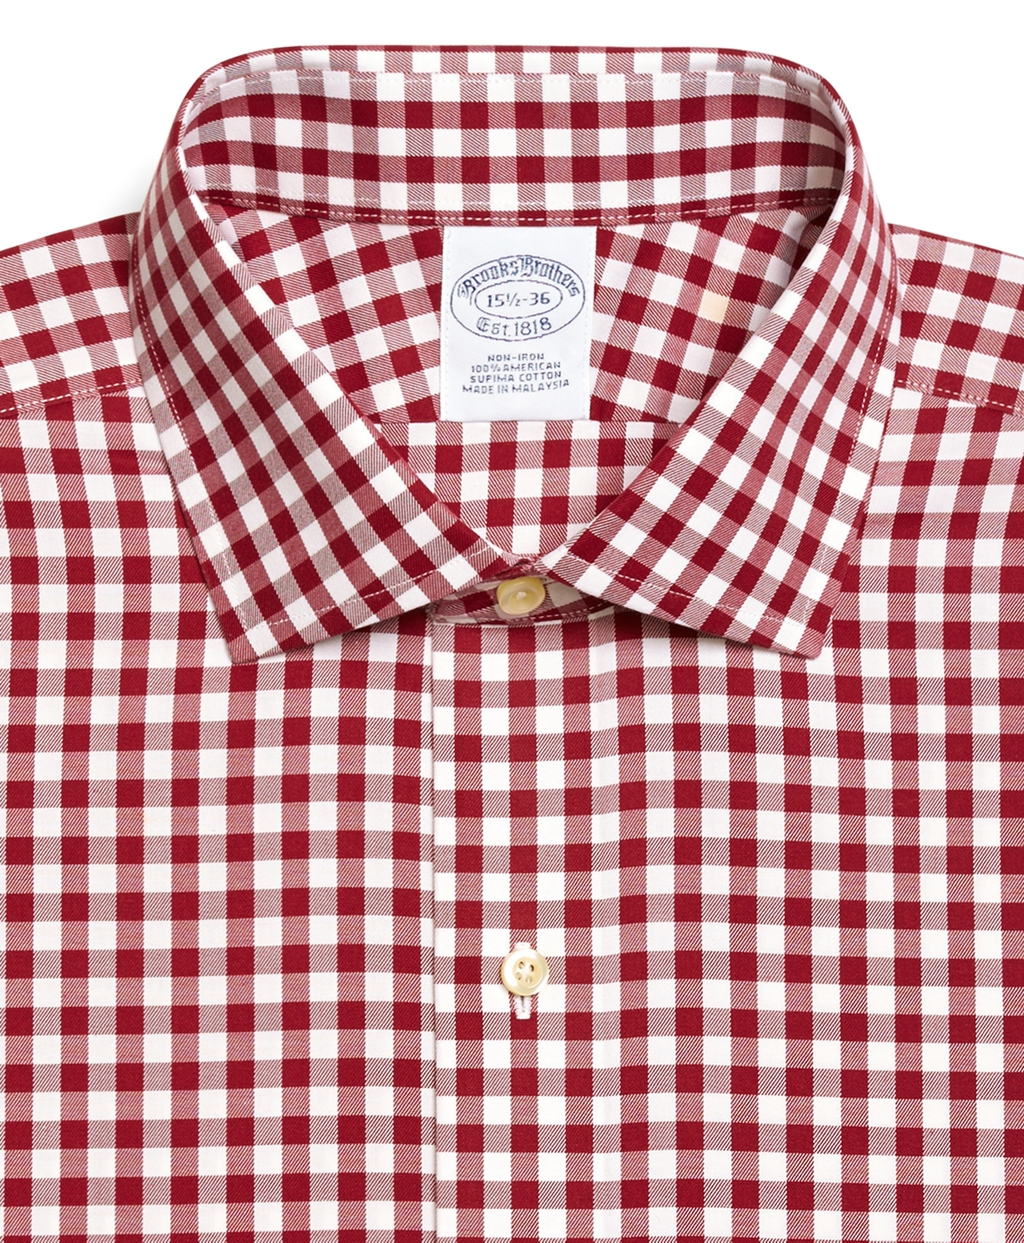 mens red gingham dress shirt best dressed